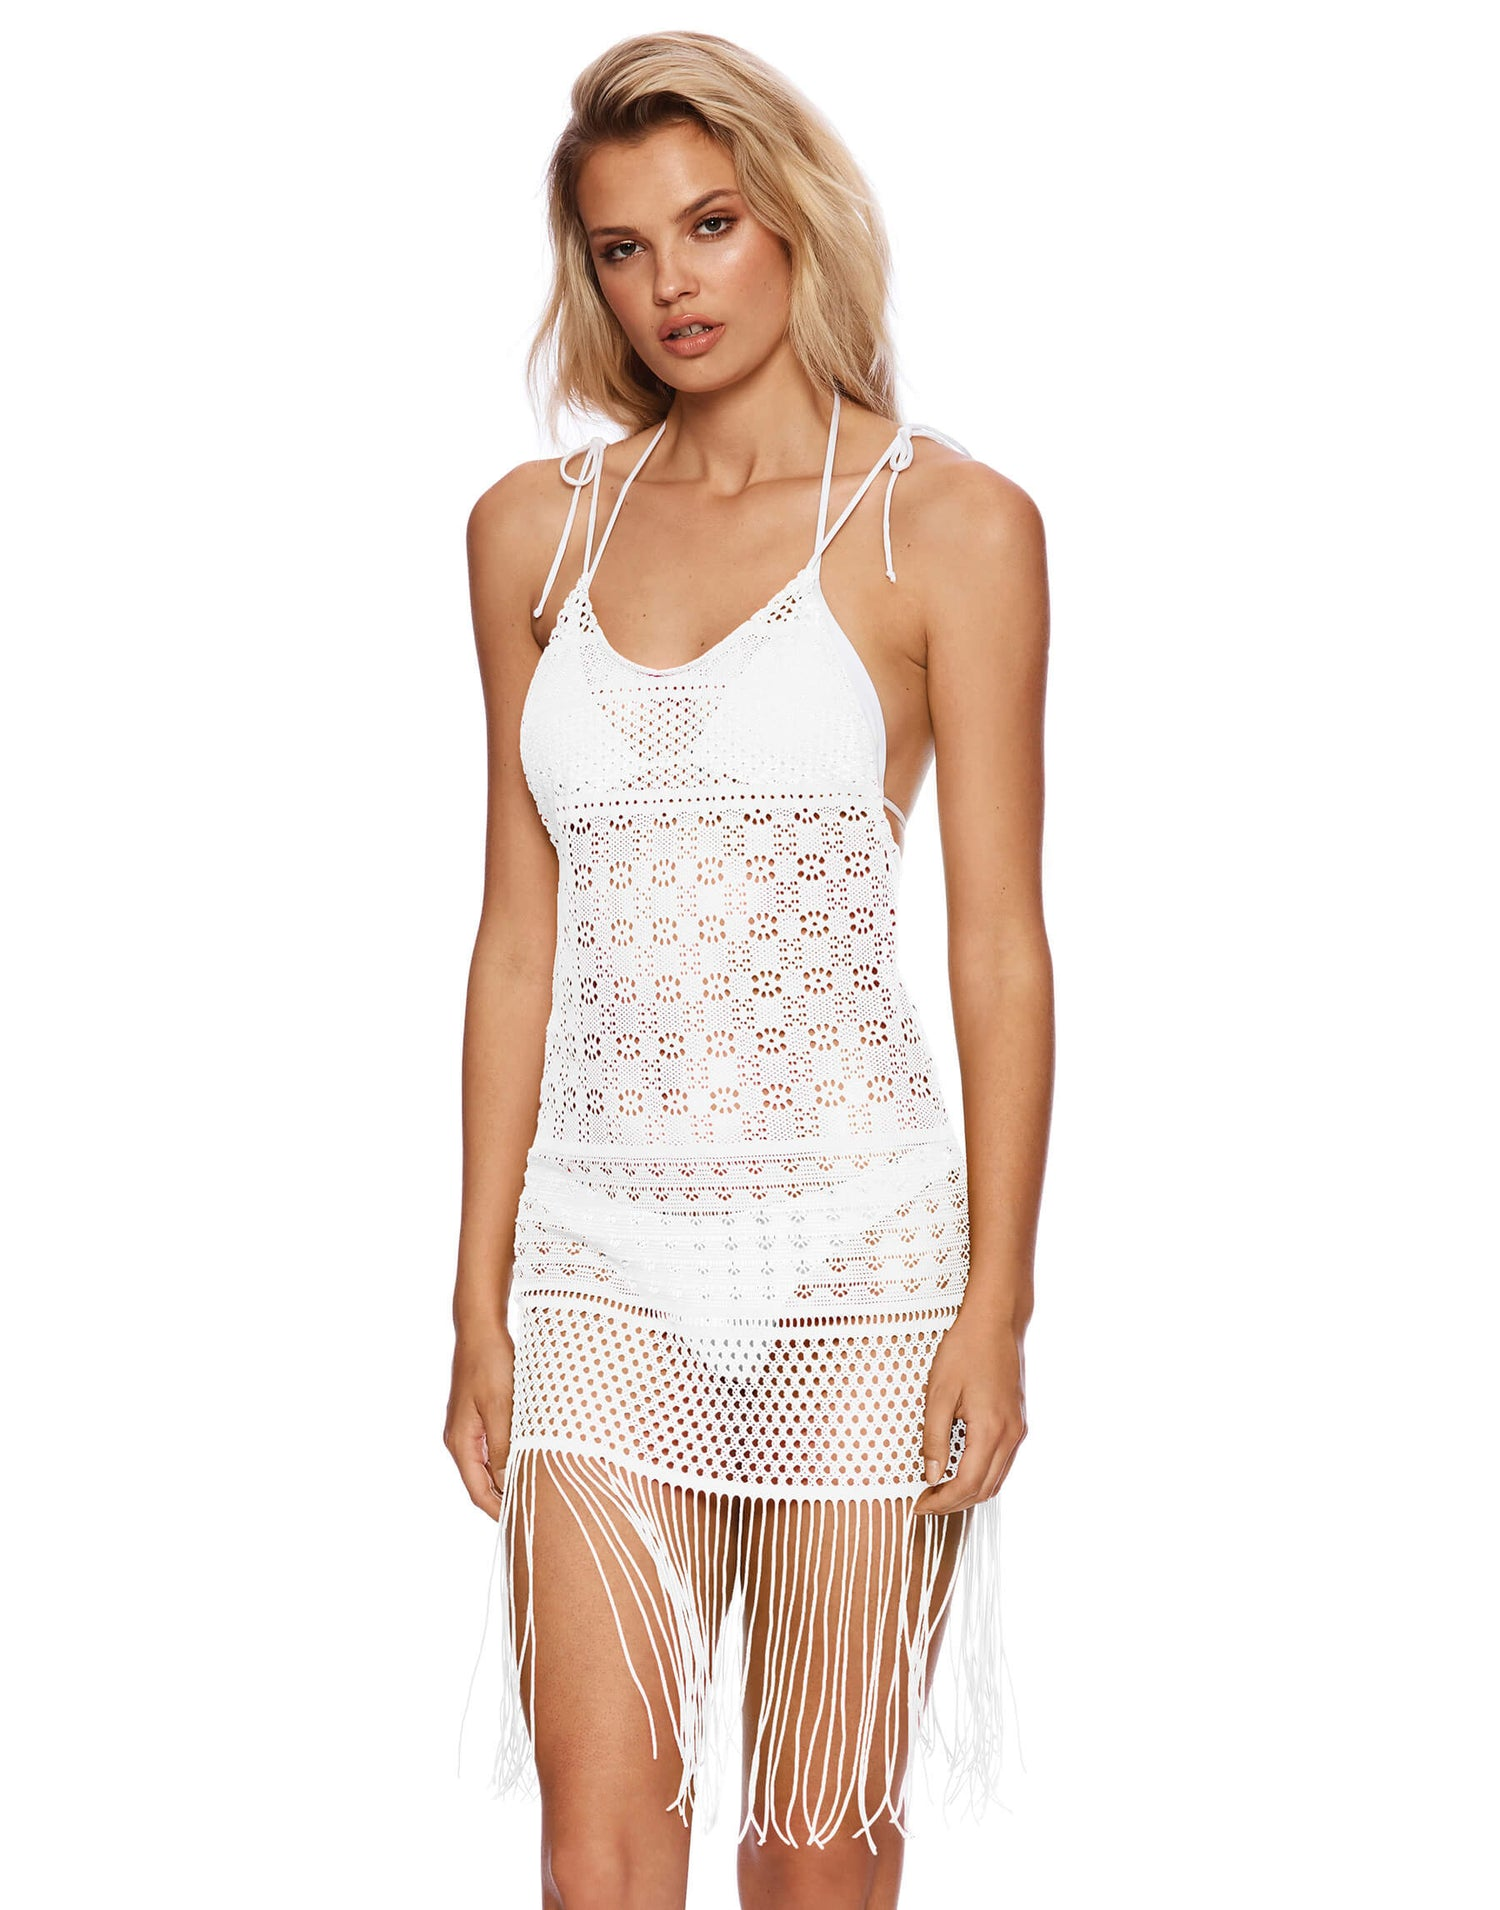 Sienna Mini Dress Crochet Cover Up in White - front view